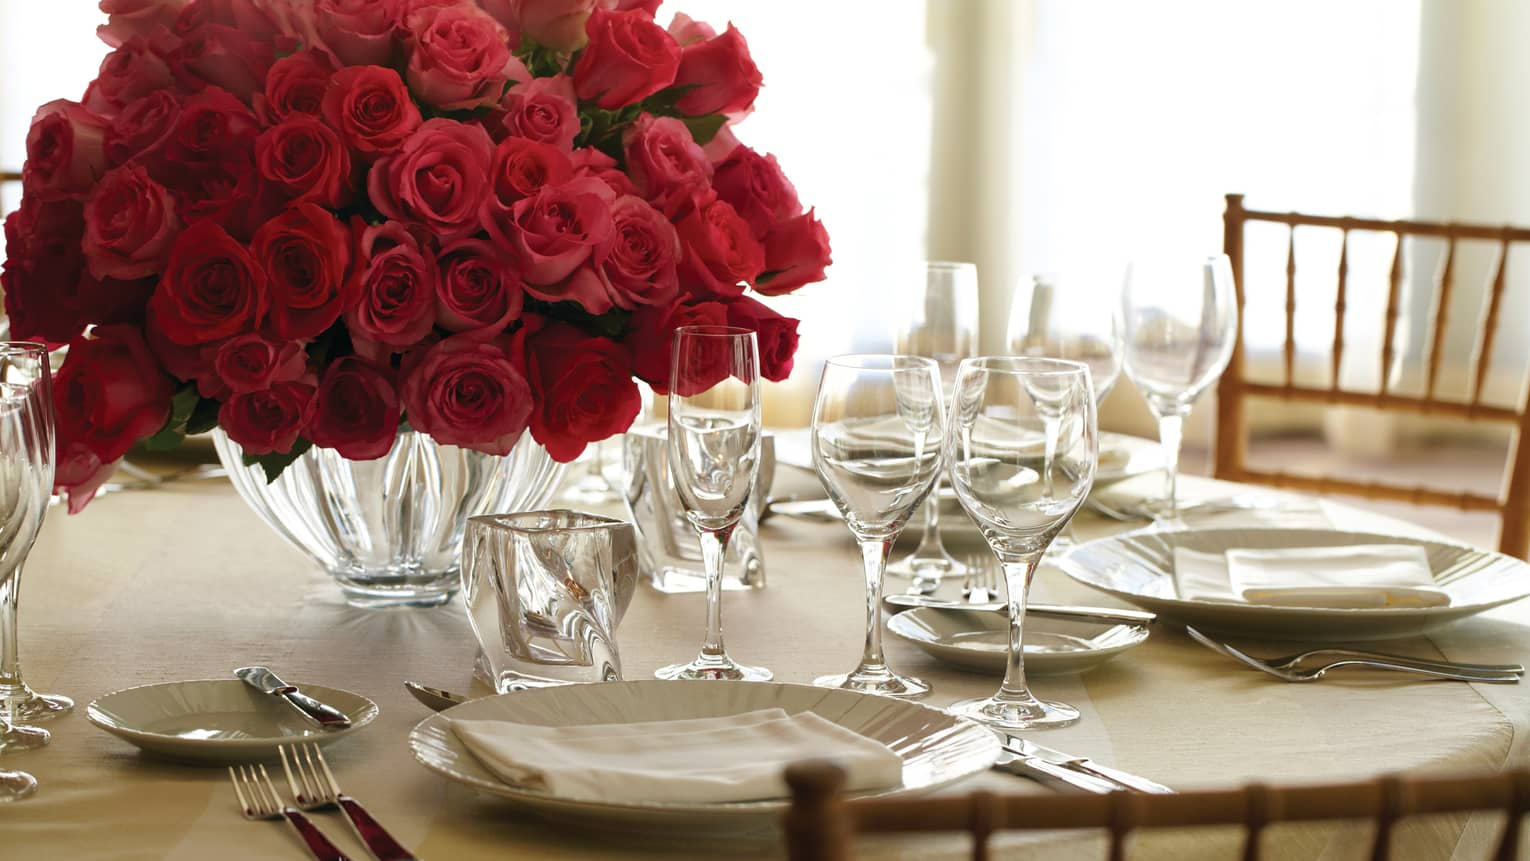 Banquet dining table place setting with plate, crystal glasses and vase with red rose bouquet